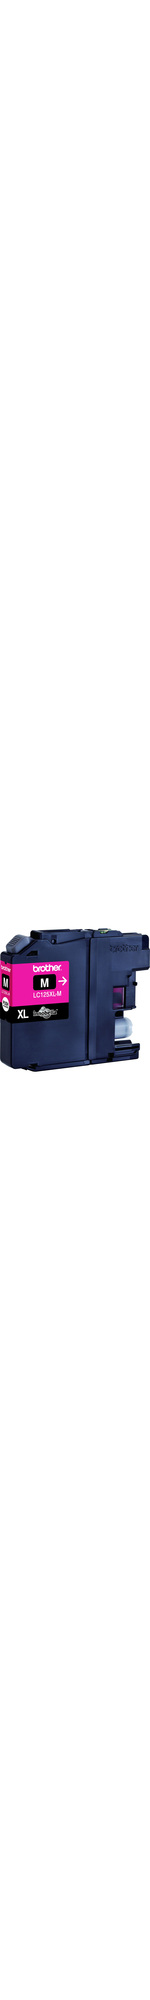 Brother Innobella LC125XLM Ink Cartridge - Magenta - Inkjet - Super High Yield - 1200 Page